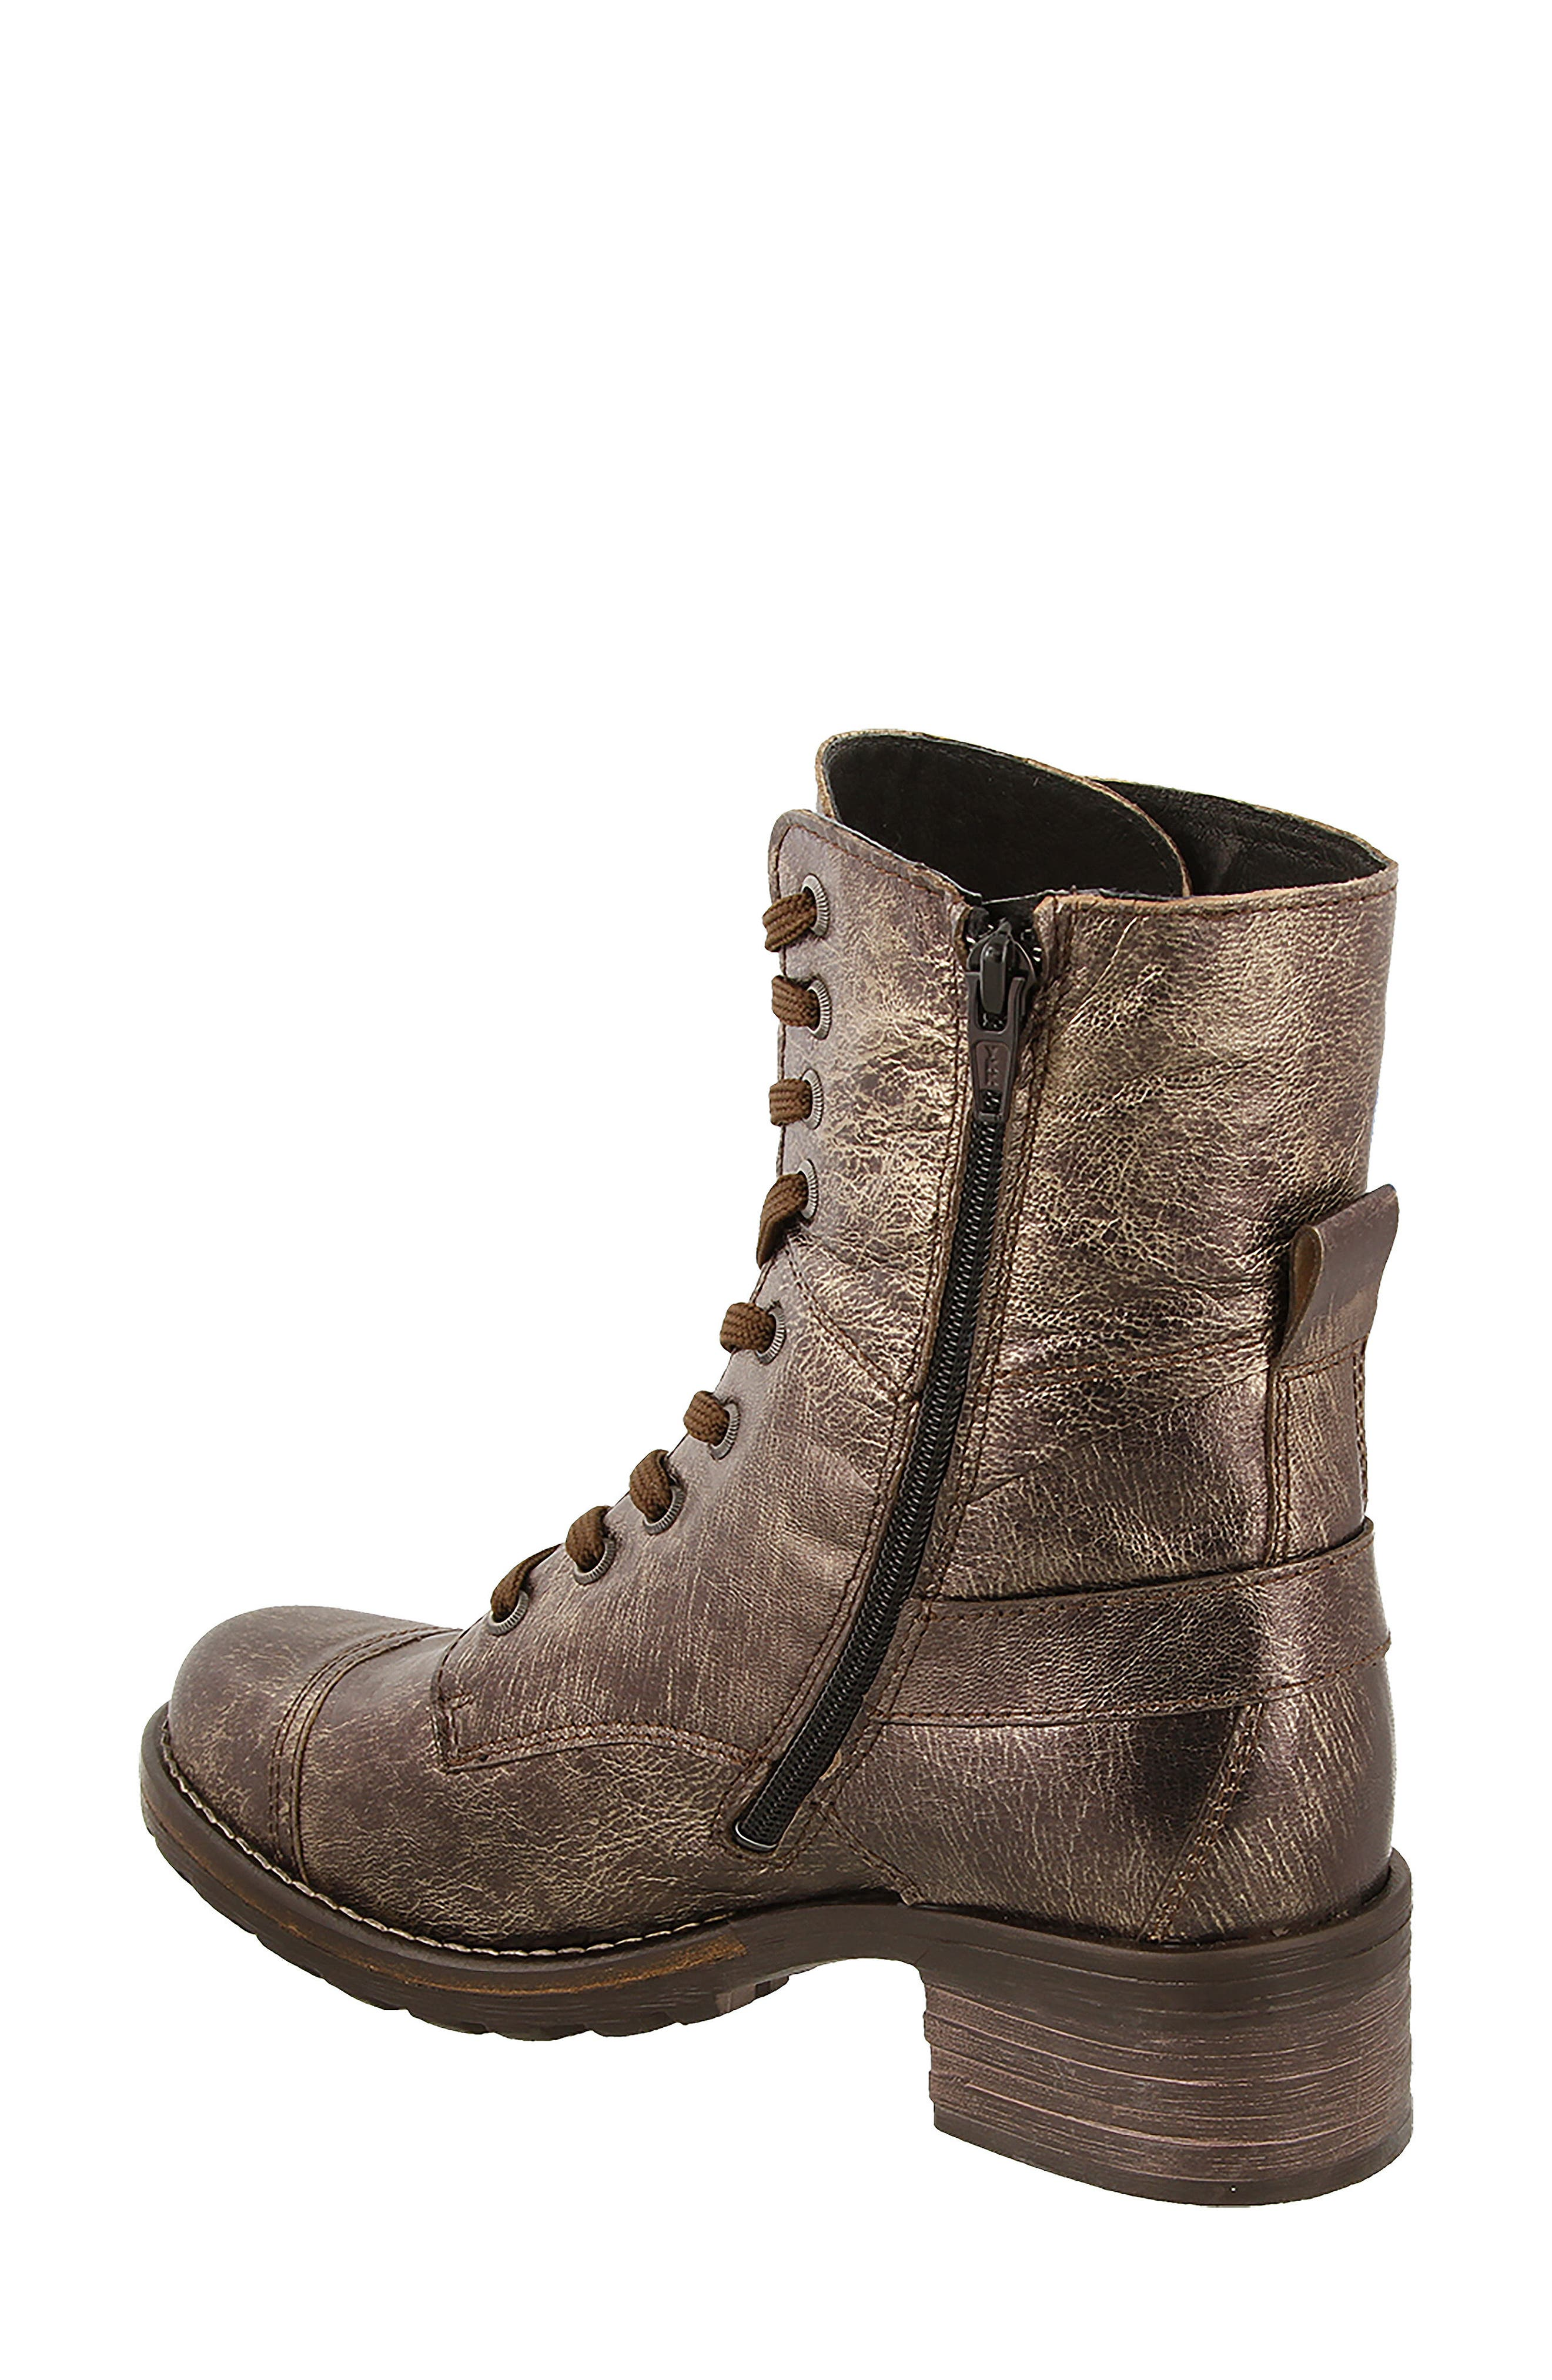 Crave Boot,                             Alternate thumbnail 2, color,                             BRONZE LEATHER